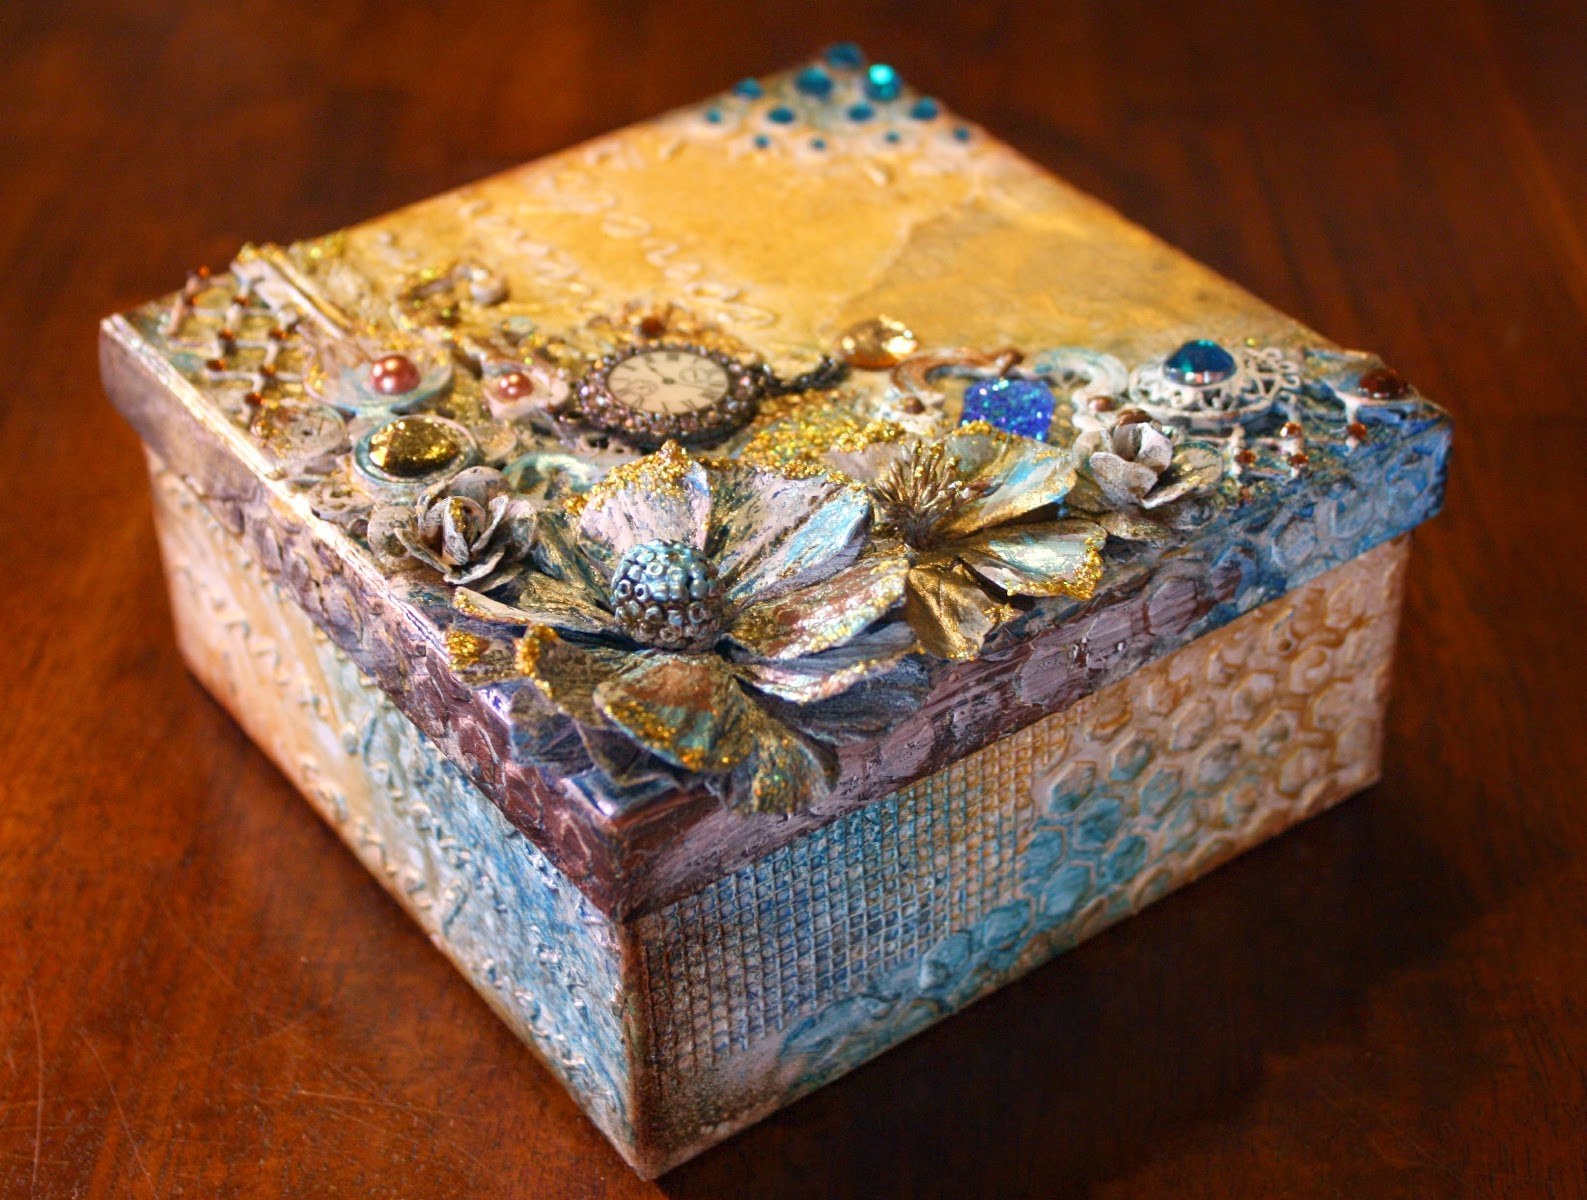 A Keepsake box by Gabrielle Pollacco using Bo Bunny mixed media products: Glimmer Sprays, Pearlescents, Glitter Paste and Stickable Stencils